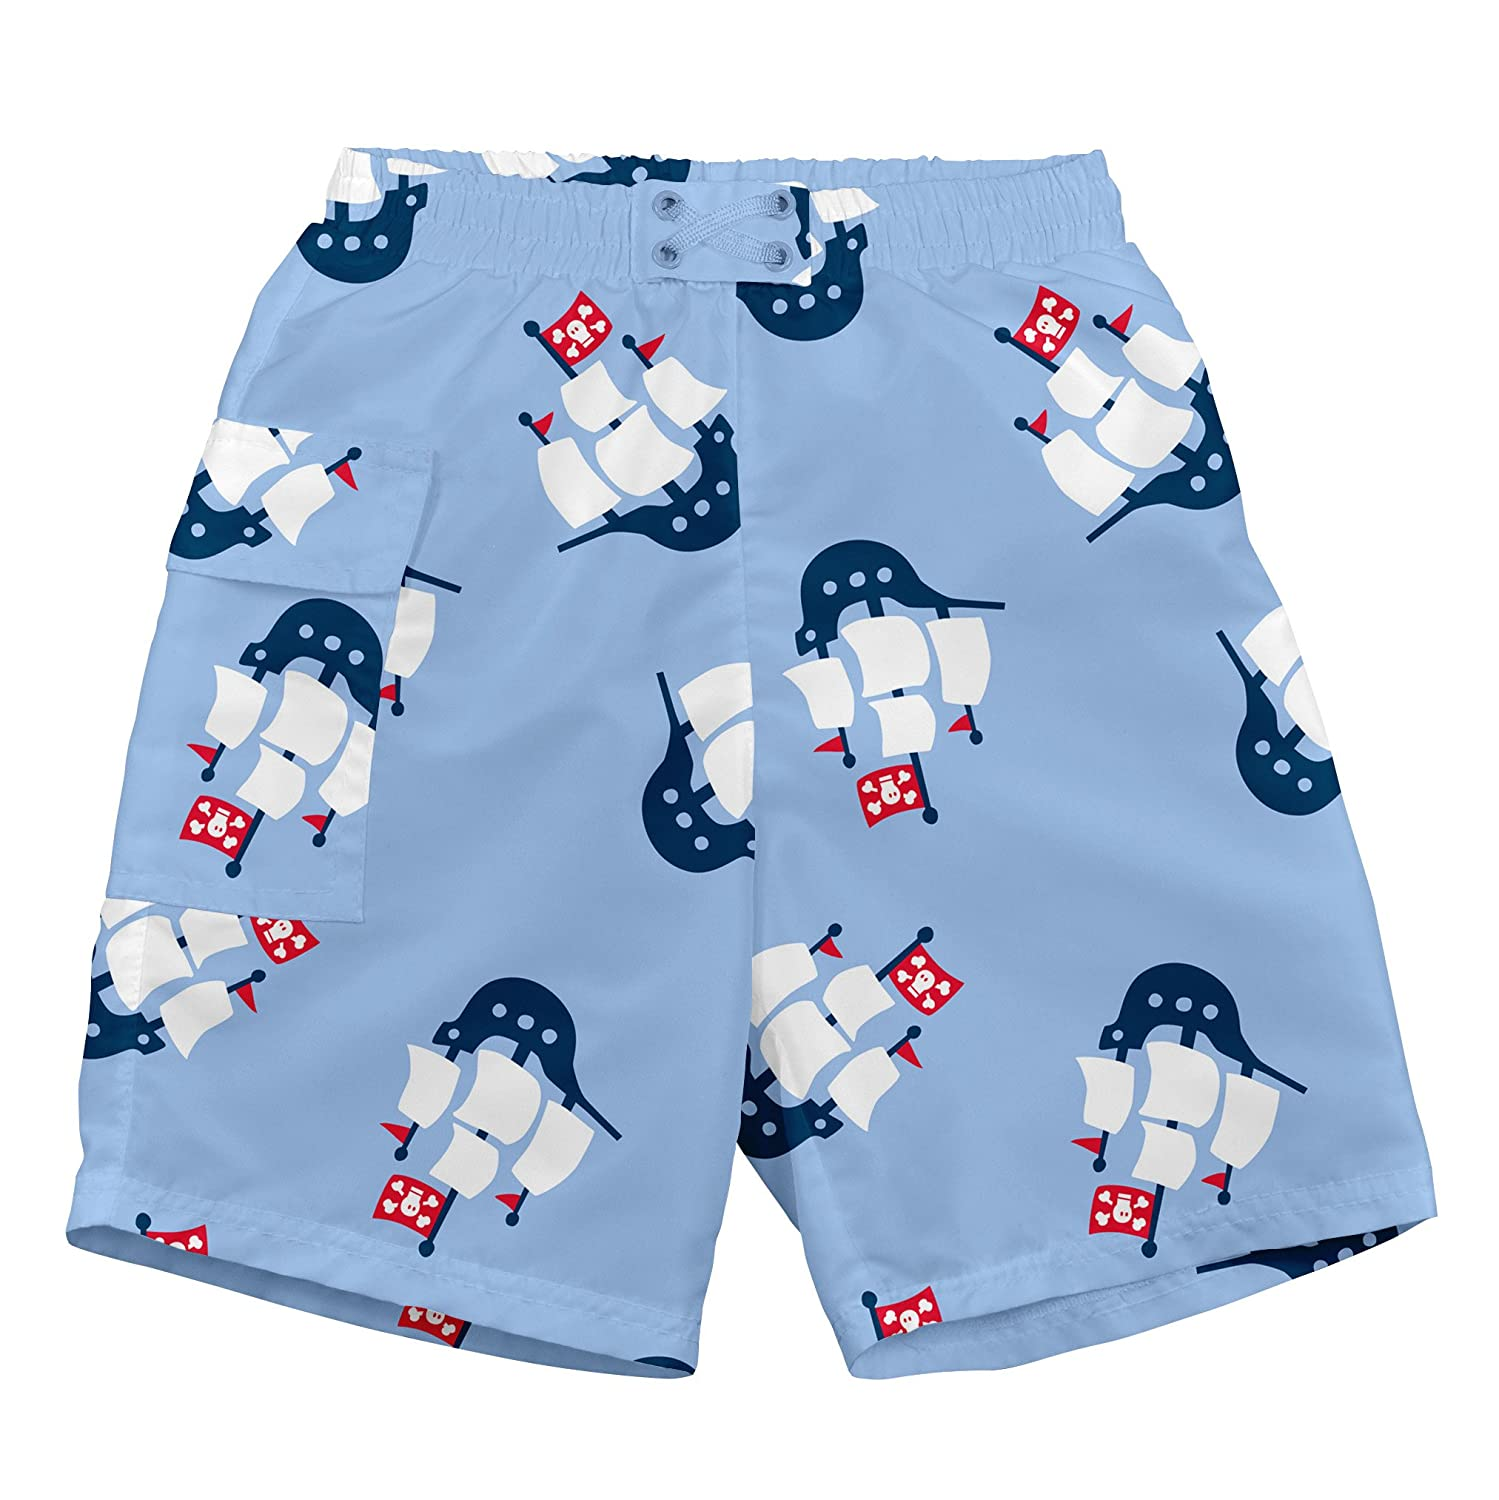 i play. Baby Boys Pocket Trunks W/Built-in Reusable Absorbent Swim Diaper i play Children' s Apparel